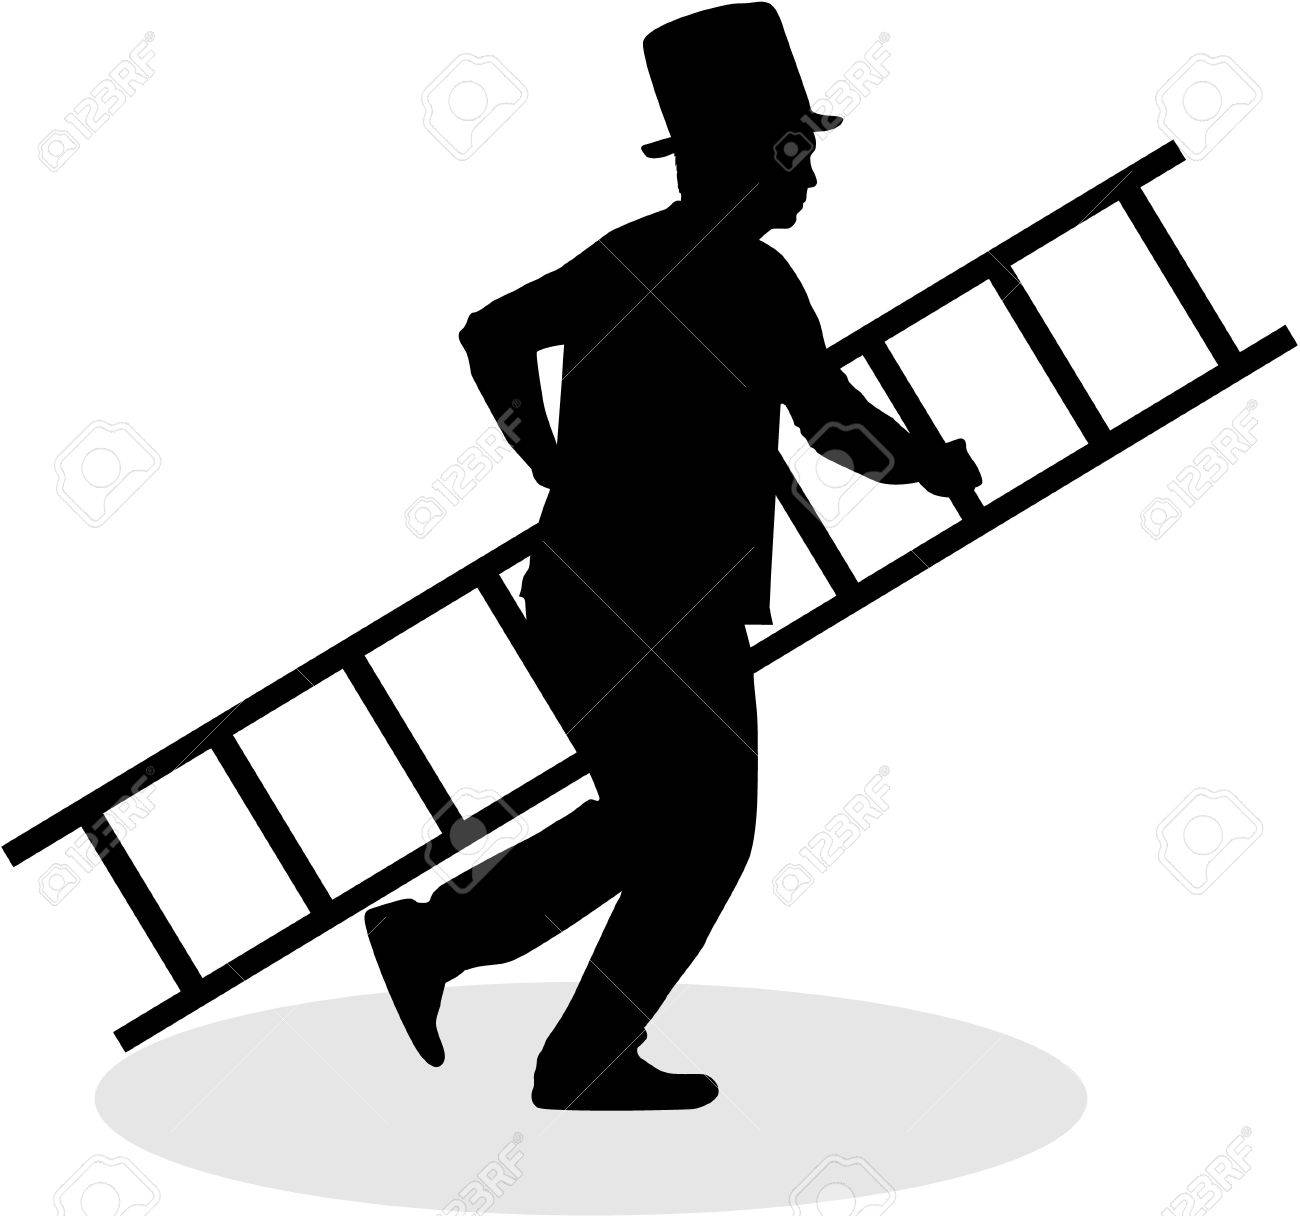 chimney sweep with a ladder black silhouette royalty free rh 123rf com Tree Vector Free Vector Sports Logos